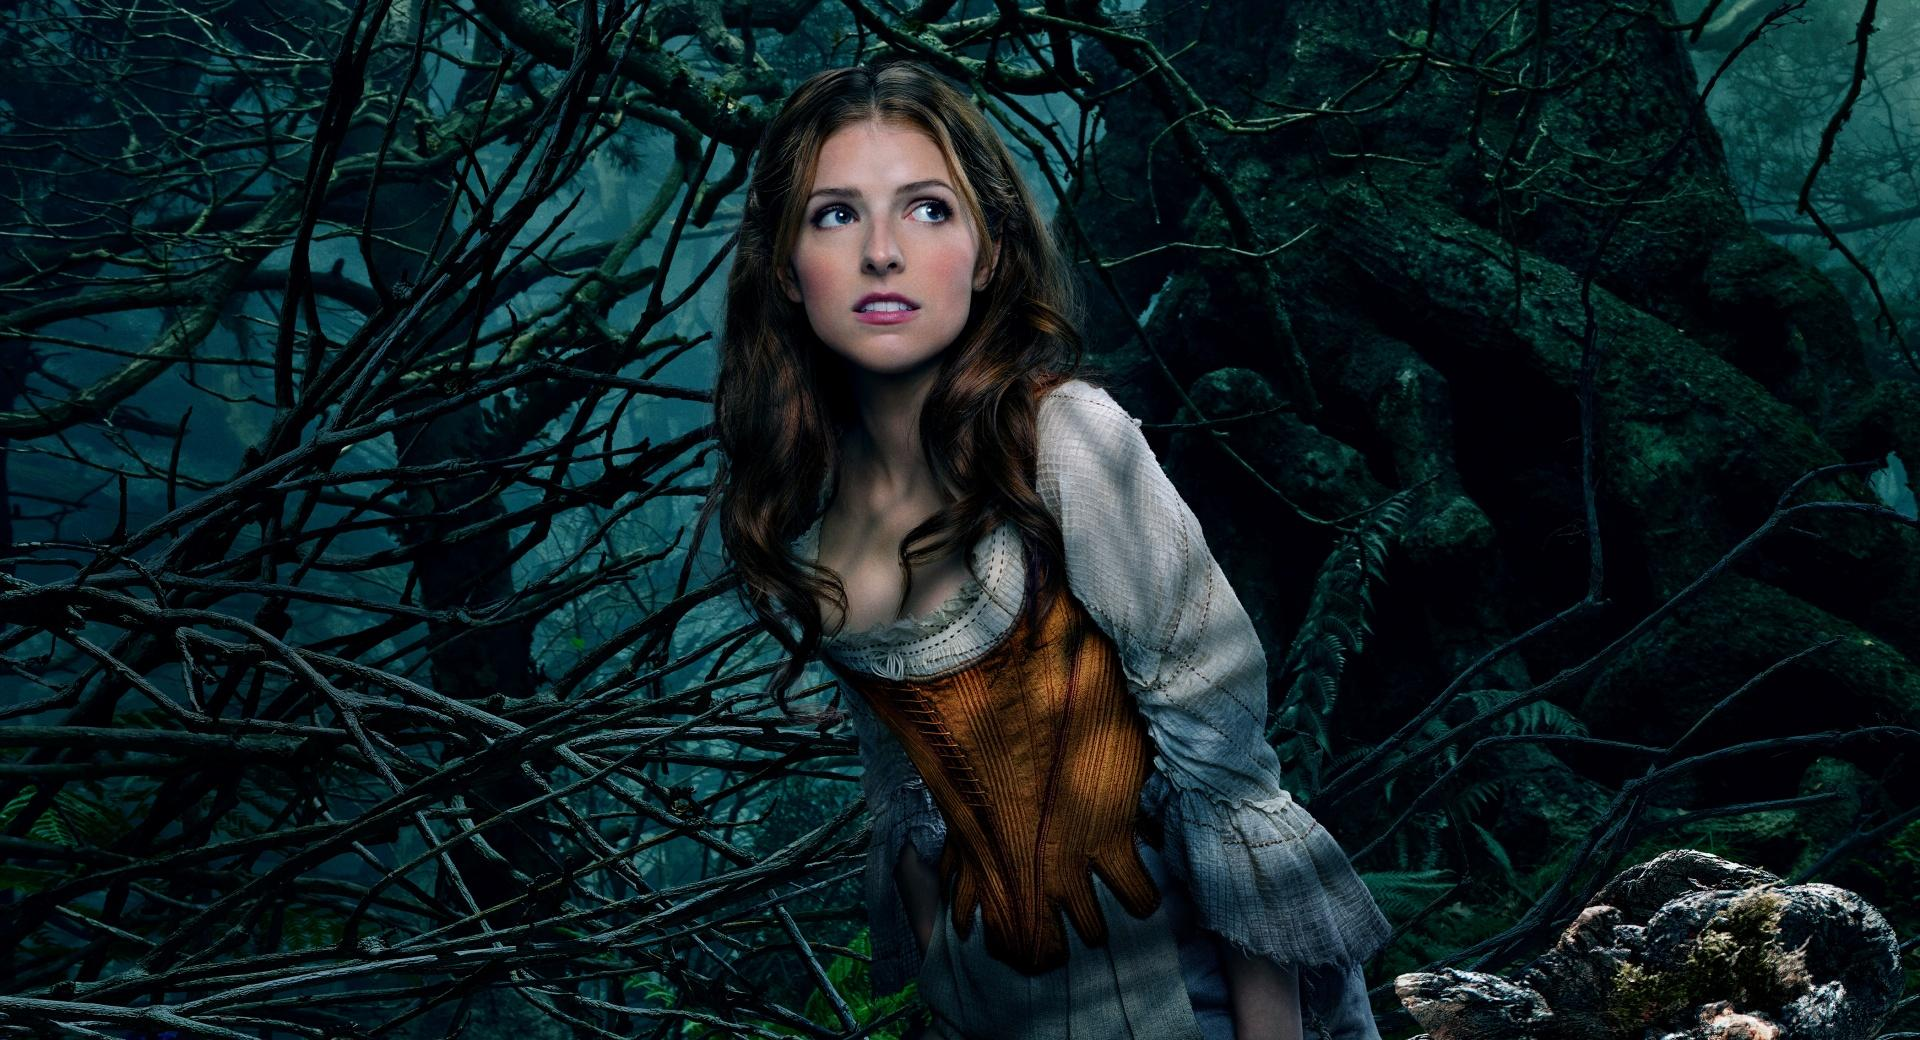 Into the Woods Anna Kendrick as Cinderella wallpapers HD quality